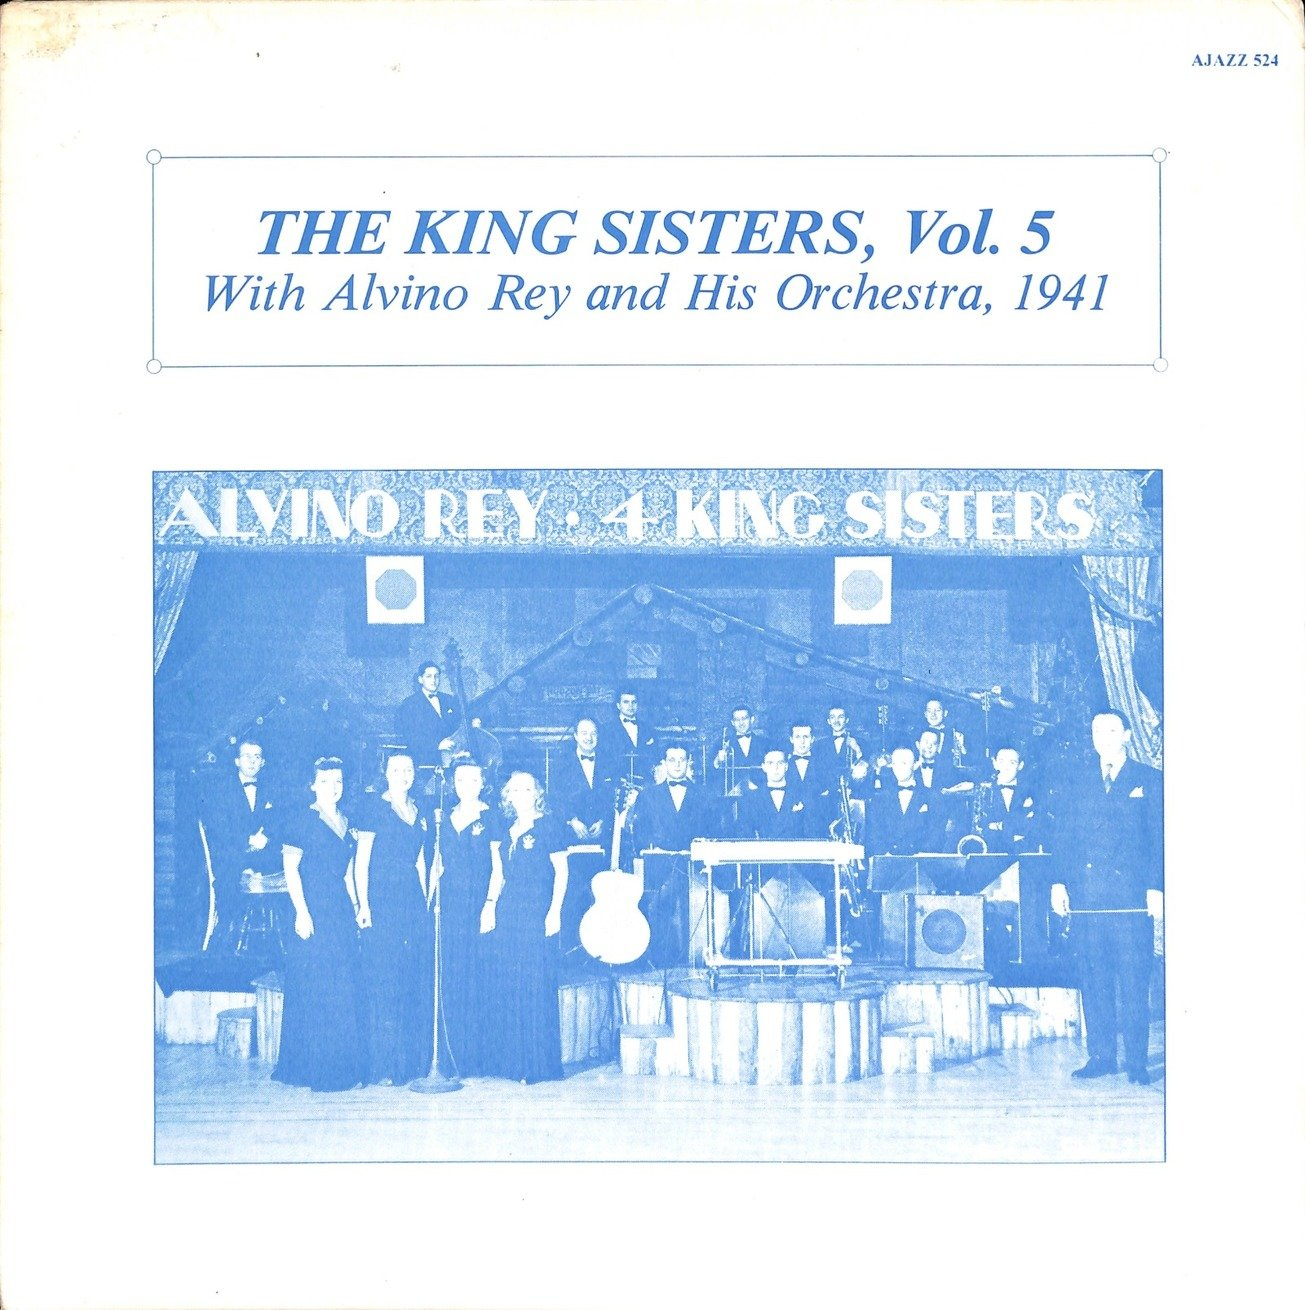 The king sisters the king sisters vol.5  28ajazz 524 29